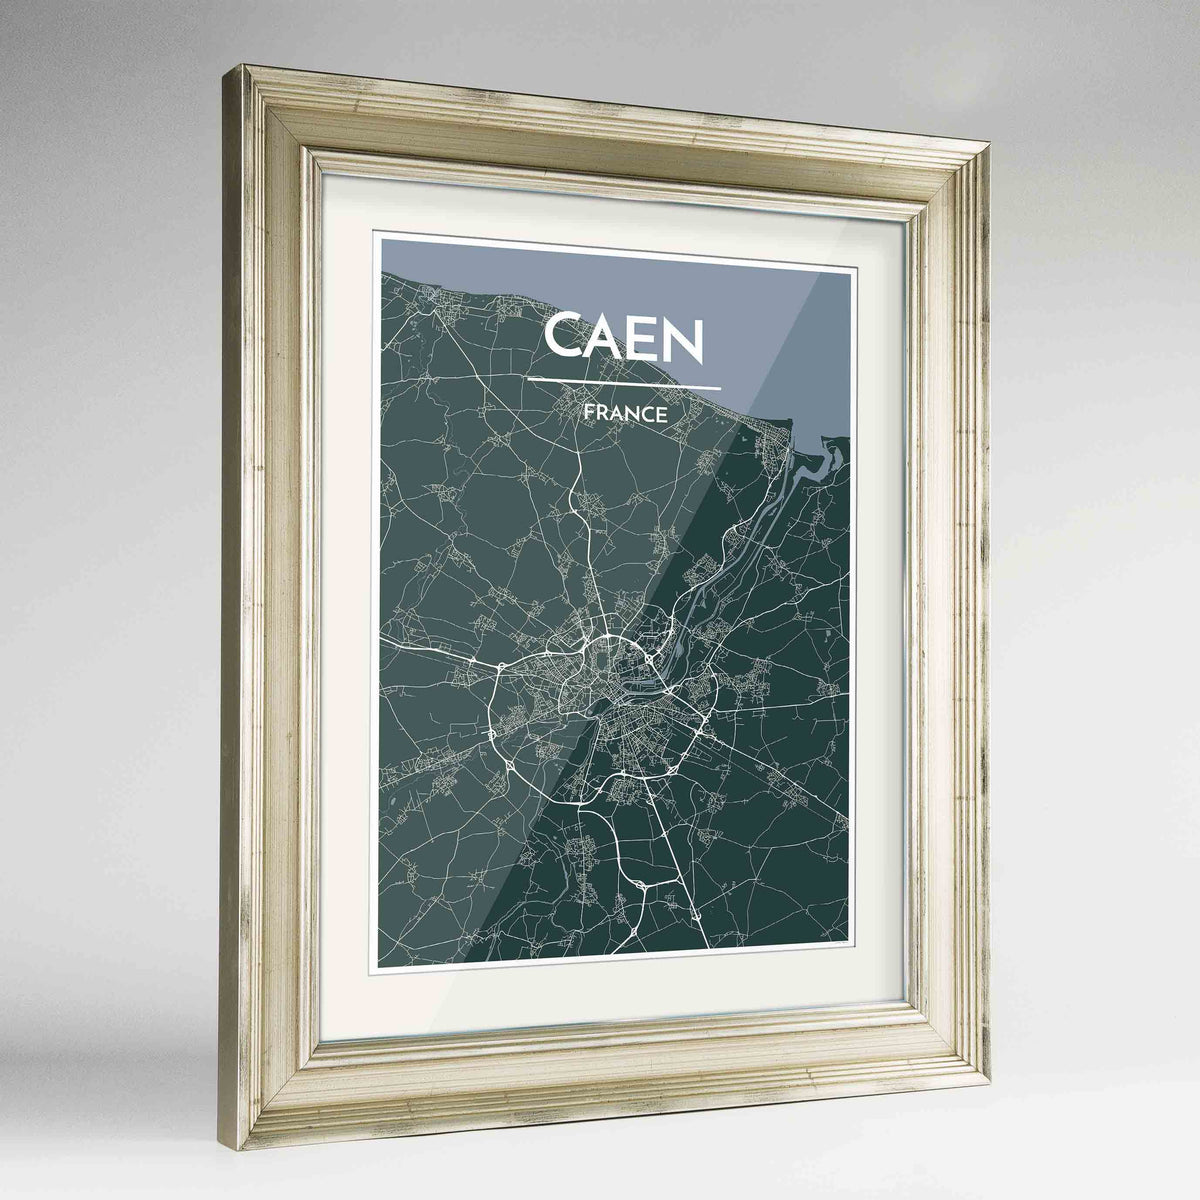 "Framed Caen Map Art Print 24x36"" Champagne frame Point Two Design Group"